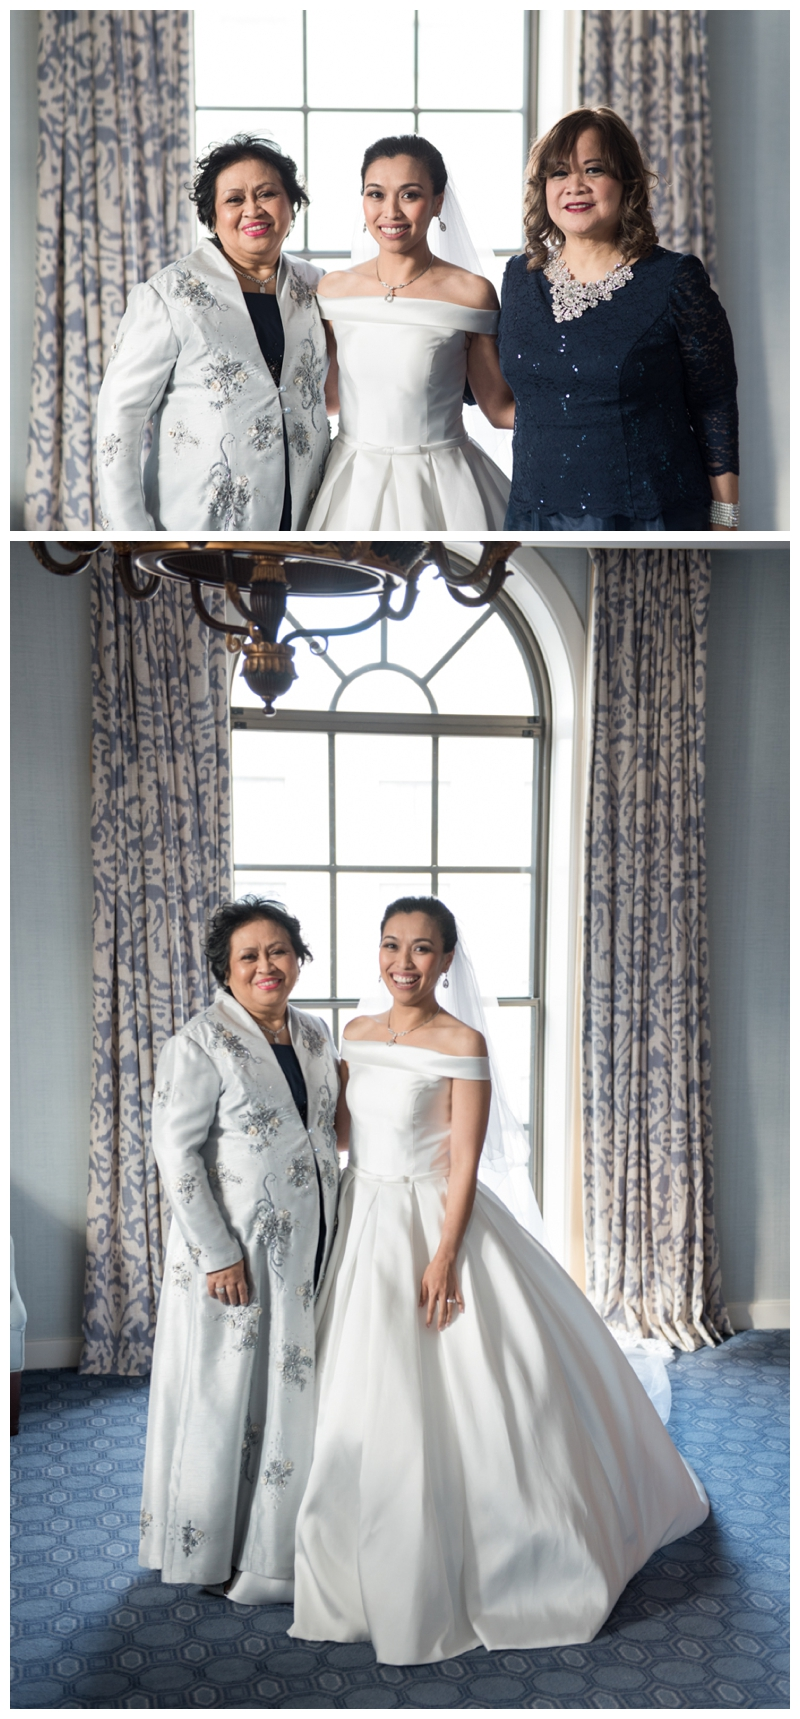 Wedding in Washington DC at the St Regis Hotel by Rachael Foster Photography_0026.jpg